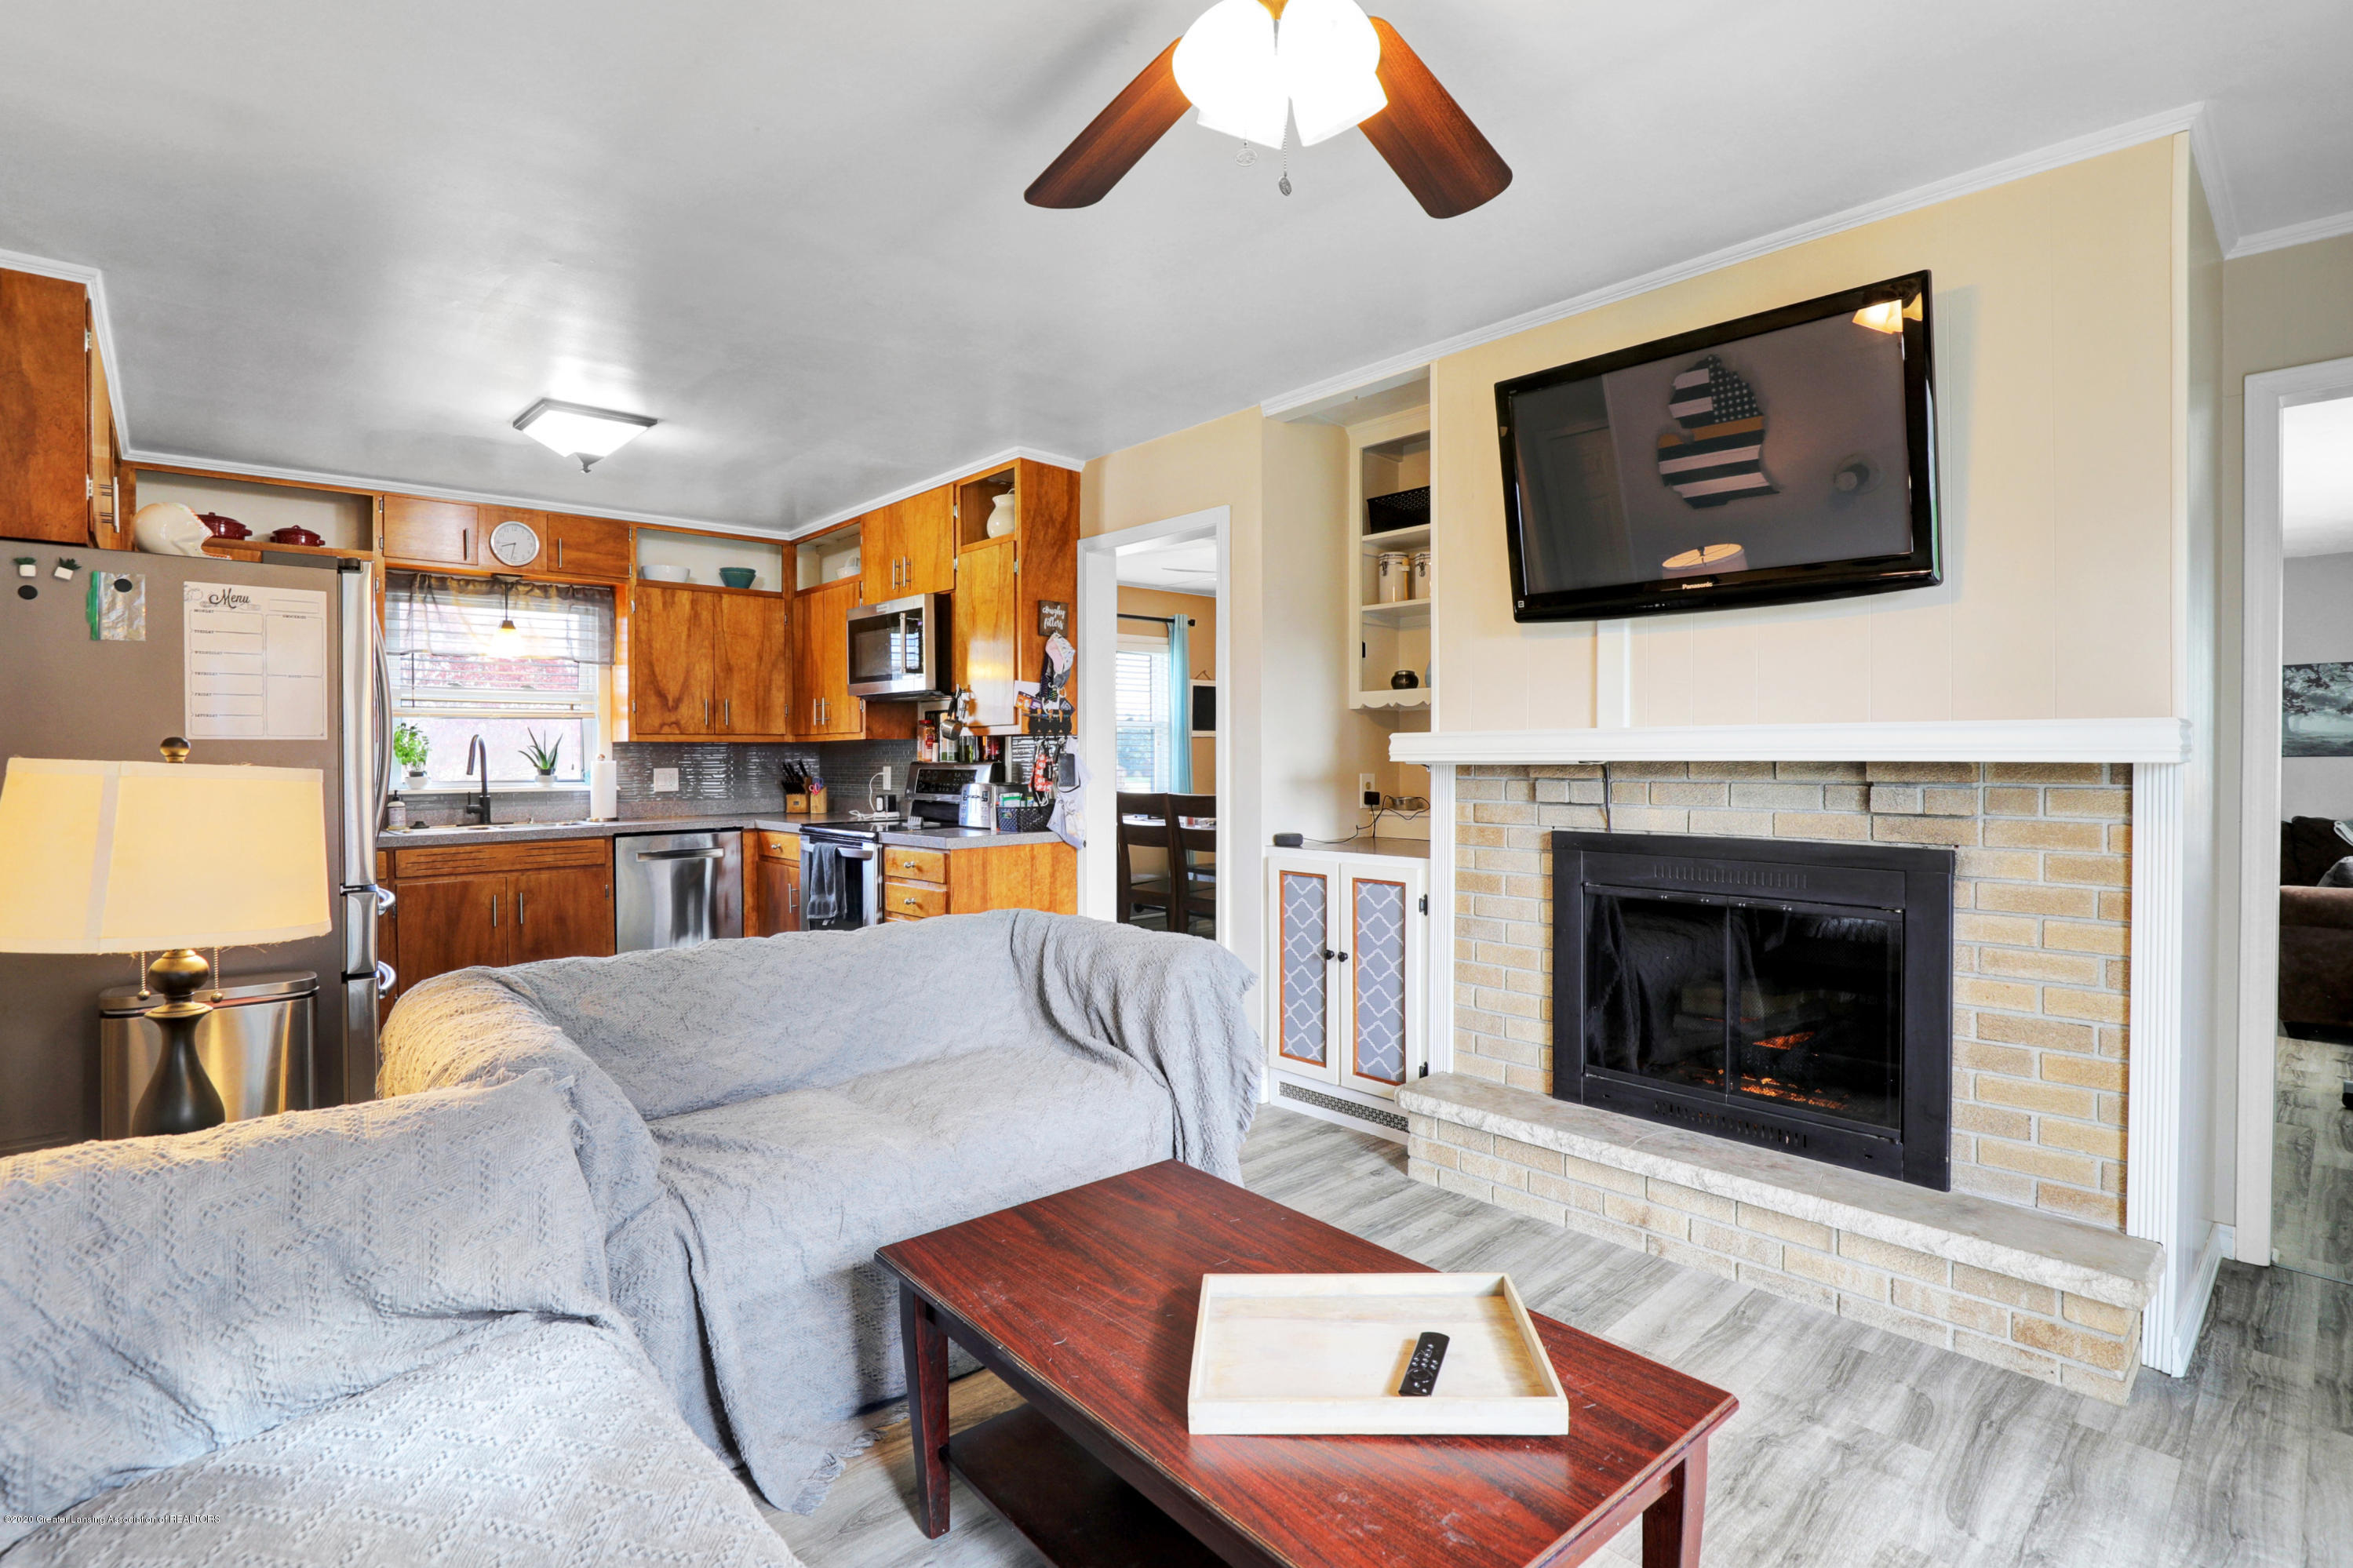 3801 E Willoughby Rd - 9I3A5955 - 16